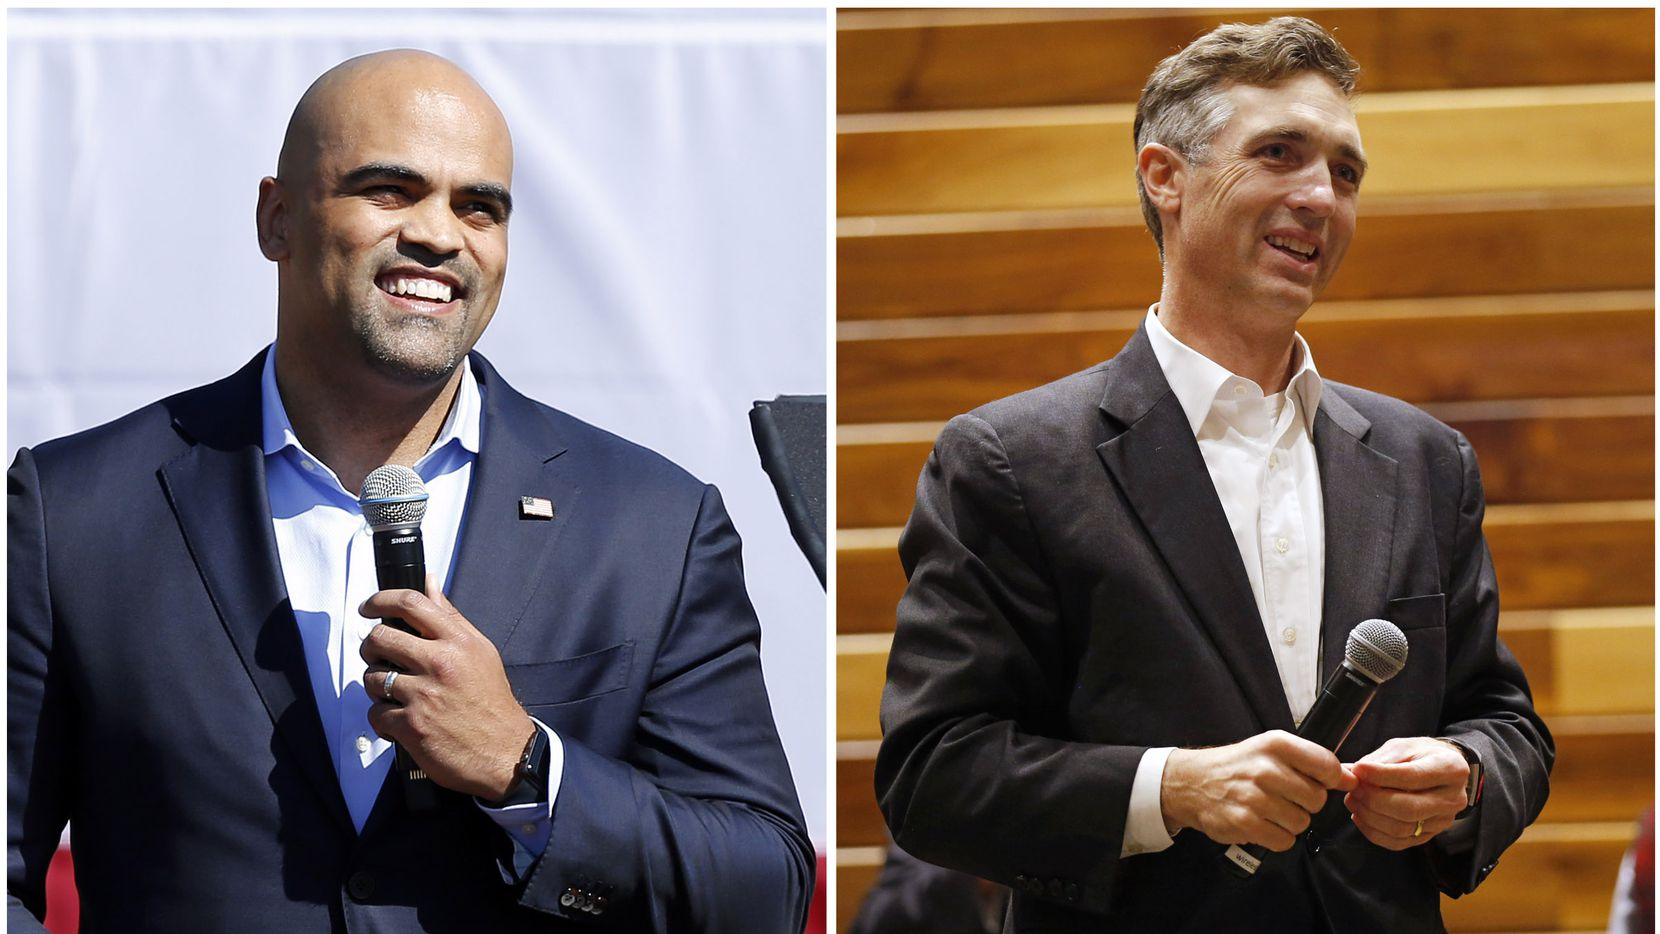 LEFT - Colin Allred, the U.S. Representative from Texas' 32nd District, speaks before former second lady Jill Biden made a drive-in campaign rally stop at Fair Park in Dallas, Tuesday, October 13, 2020. (Tom Fox/The Dallas Morning News)RIGHT - U.S. Rep Van Taylor during an election watch night party at Verona Villas on Tuesday, November 3, 2020 in Frisco, Texas. (Vernon Bryant/The Dallas Morning News)